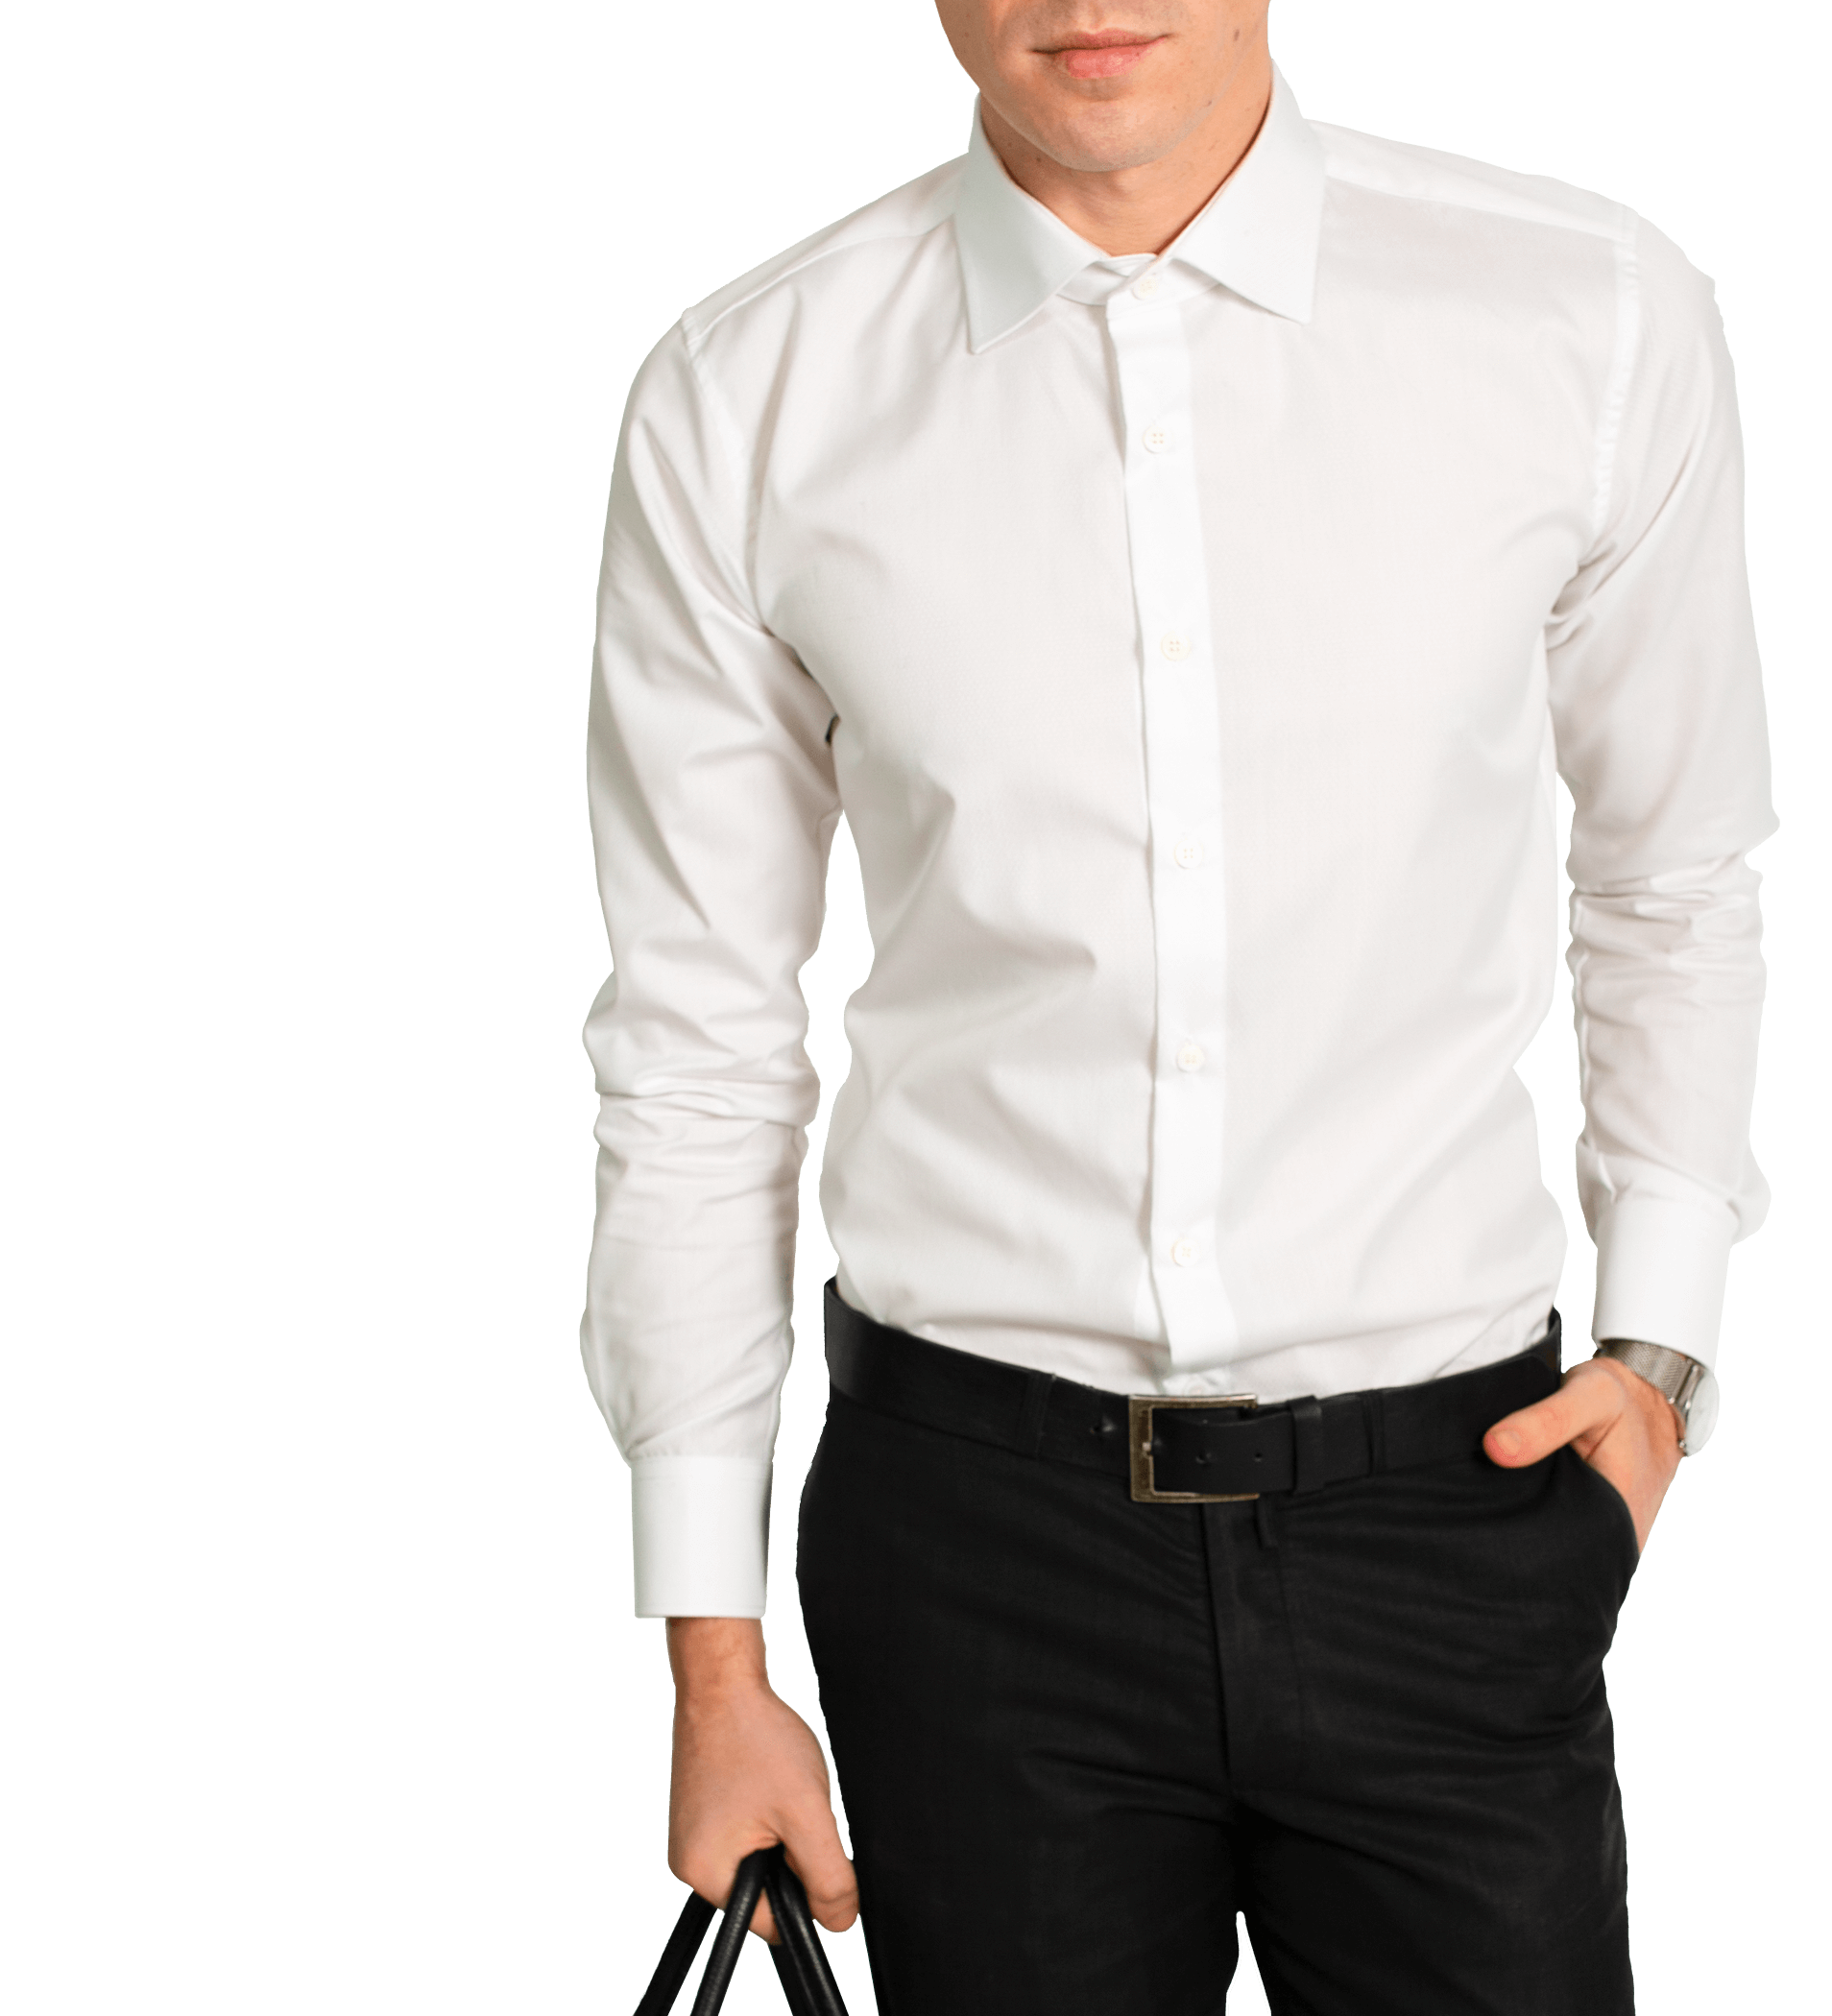 White Shirt Boss